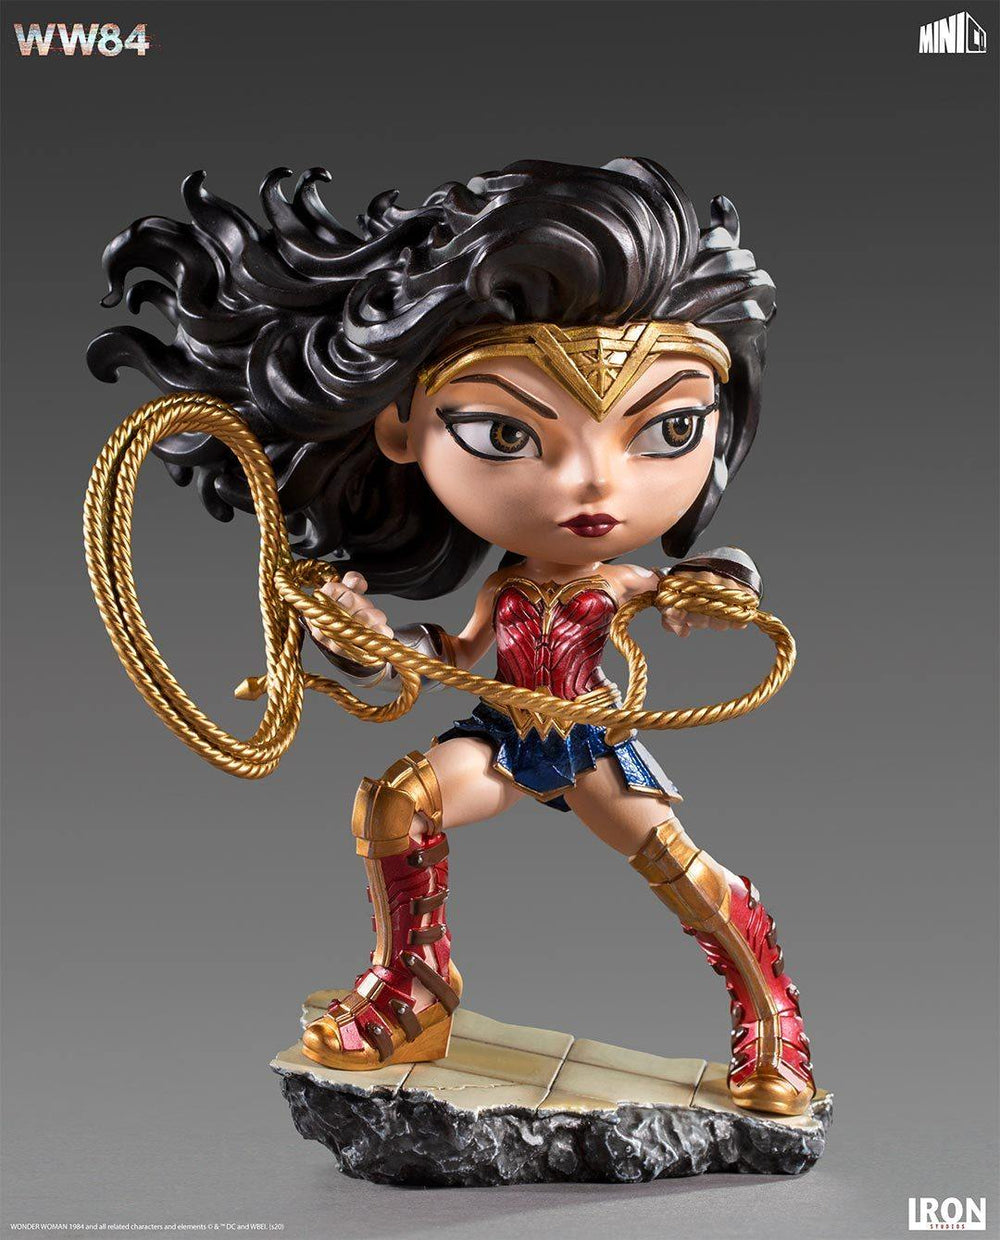 PREORDER - IRON STUDIOS - Wonder Woman - WW84 - Minico